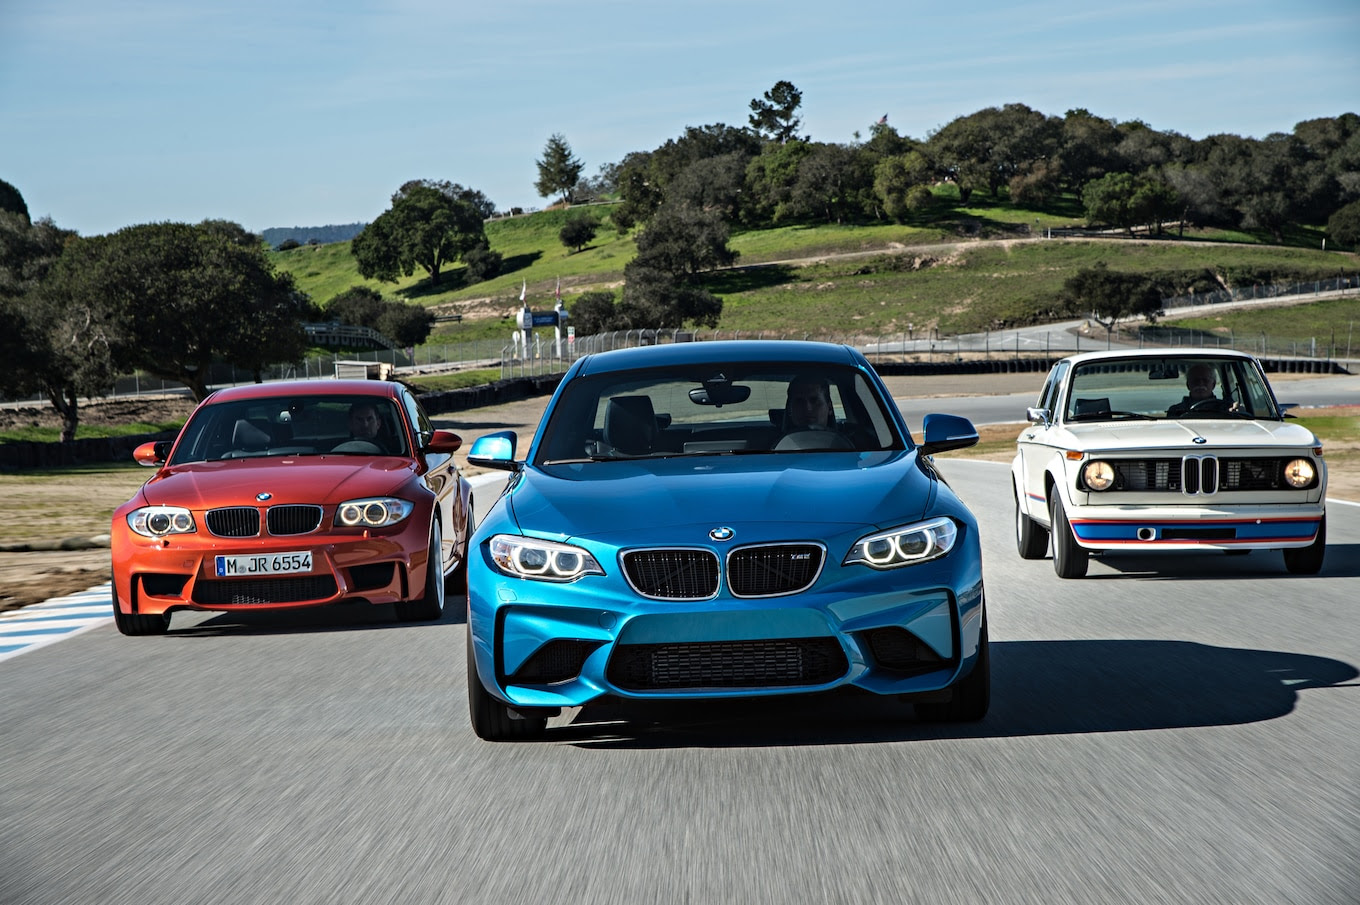 2016 bmw m2 bmw 2002 turbo and bmw 1 series m e front end 02